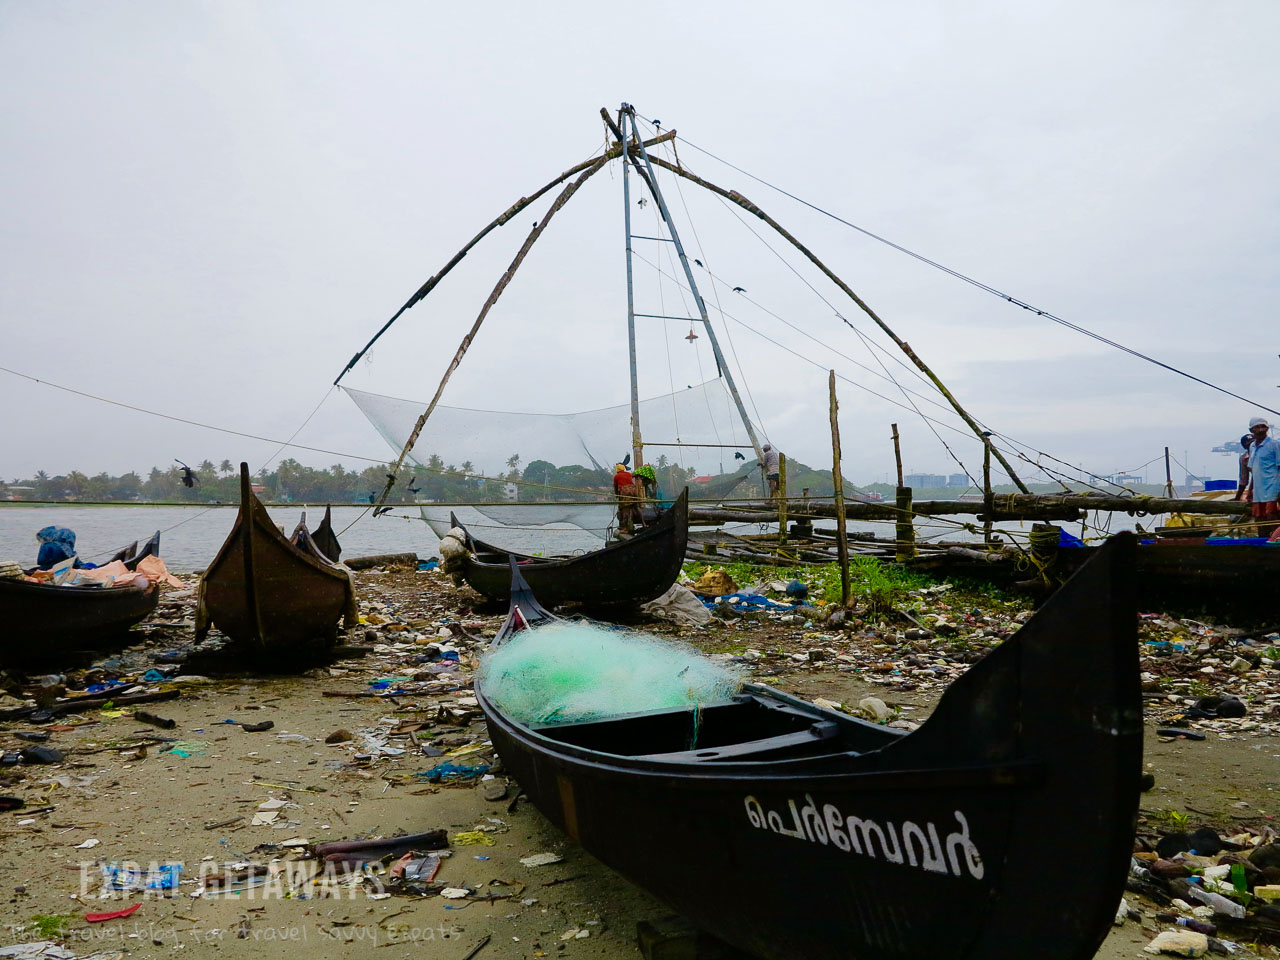 The Chinese fishing nets of Fort Kochi are one of the must see stops on the waterfront. Expat Getaways - One Week in Kerala, India.